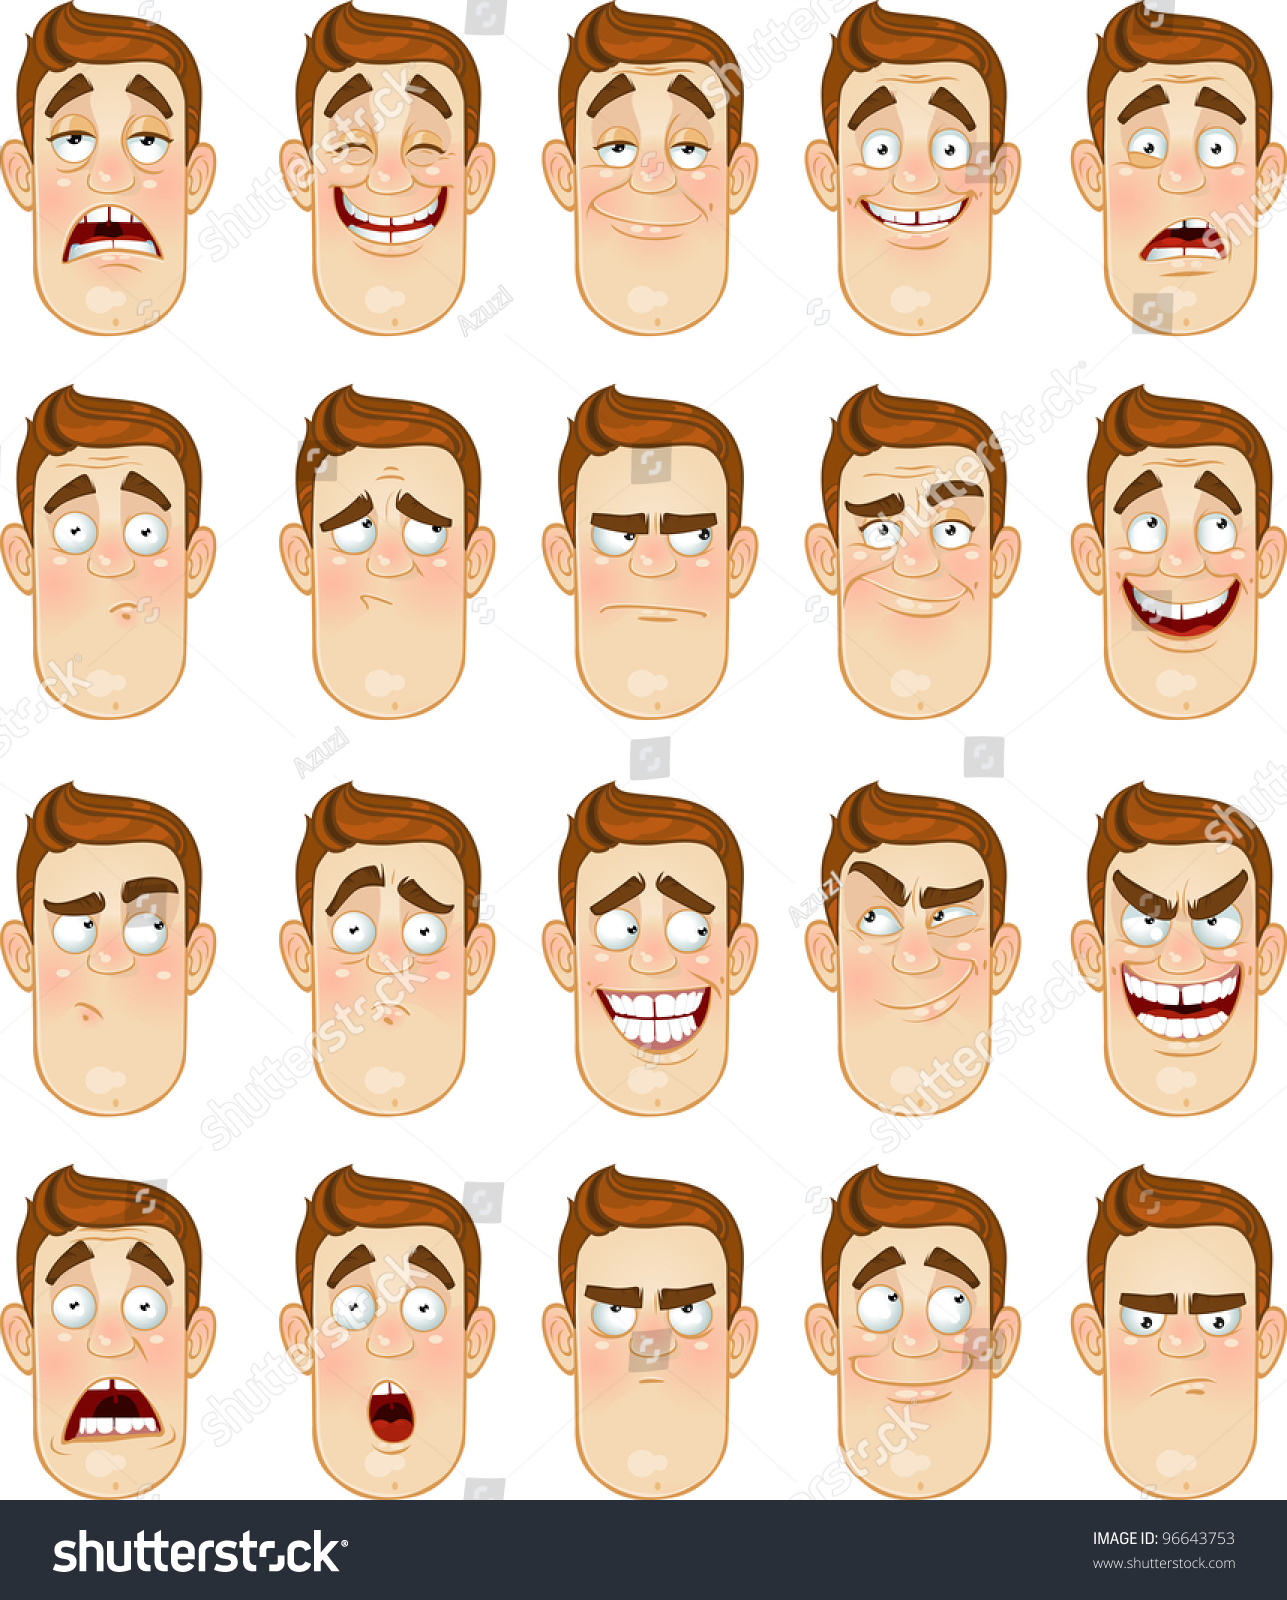 a view on the categories of emotions happiness sadness and anger Anger is a high-arousal emotion sadness is low-arousal  articles with a large number of comments were found to evoke high-arousal emotions, such as anger and happiness, paired with low.